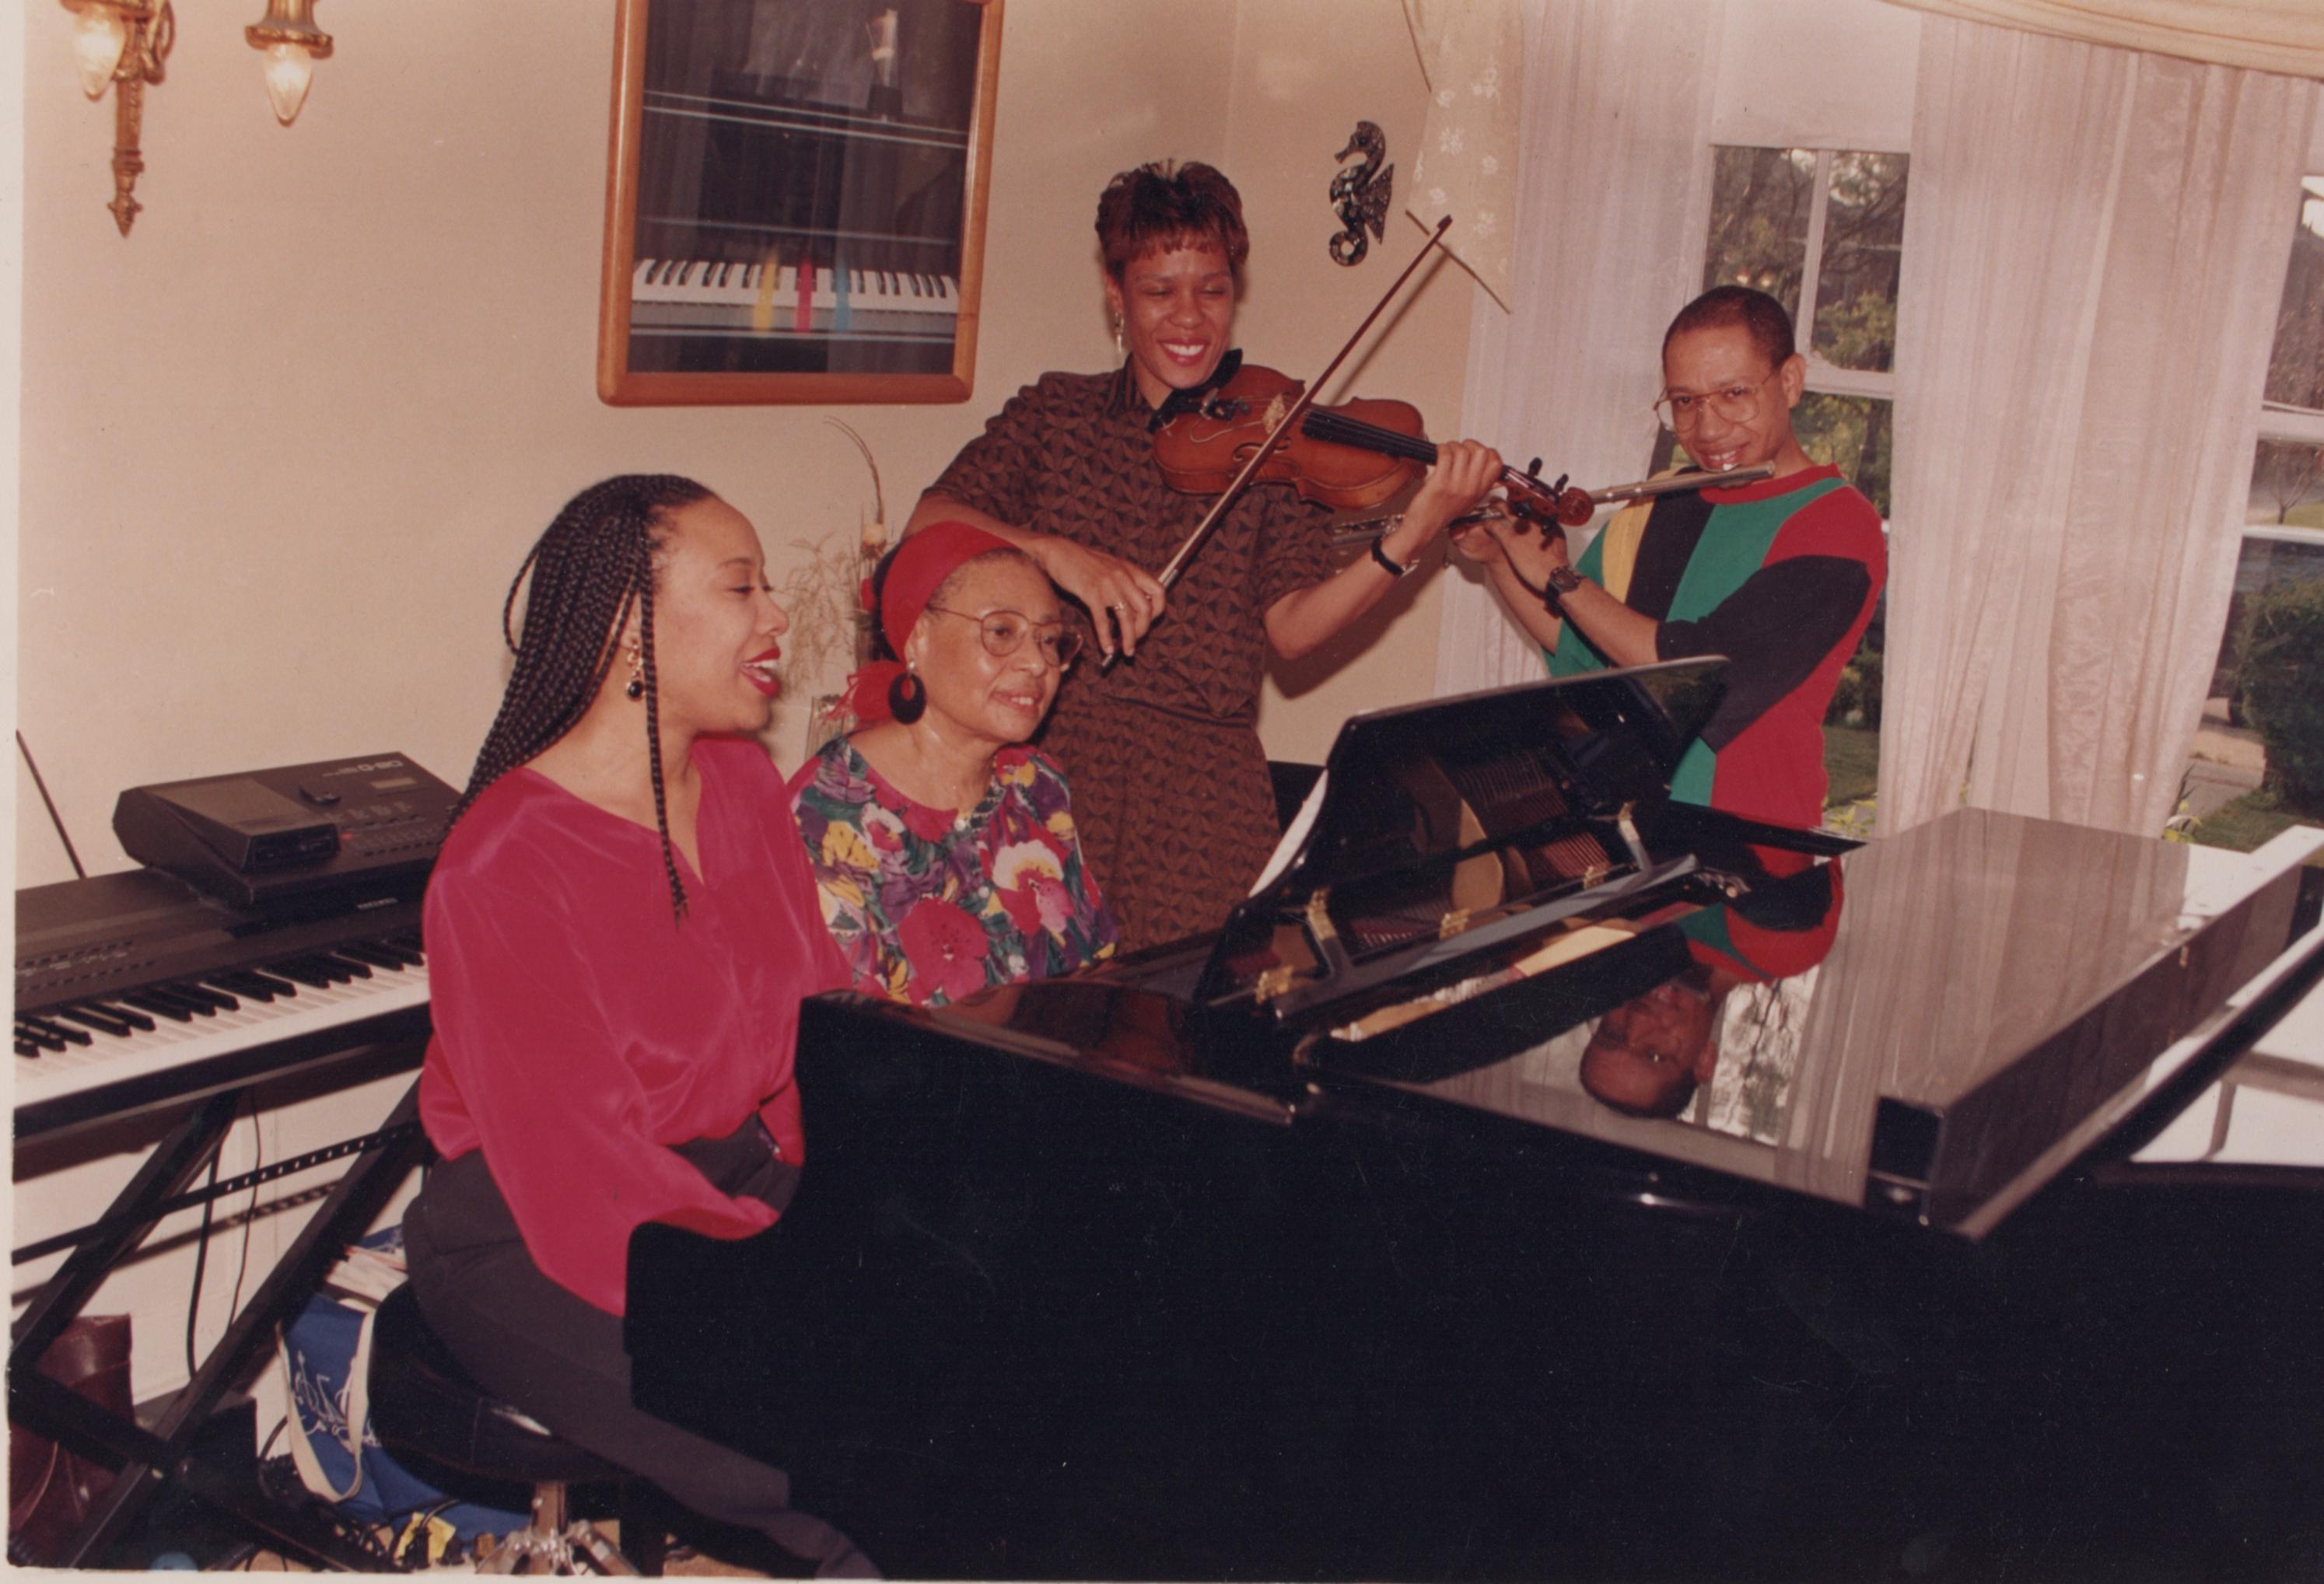 Angela-Mary-Michelle-Dale-mid-1990s